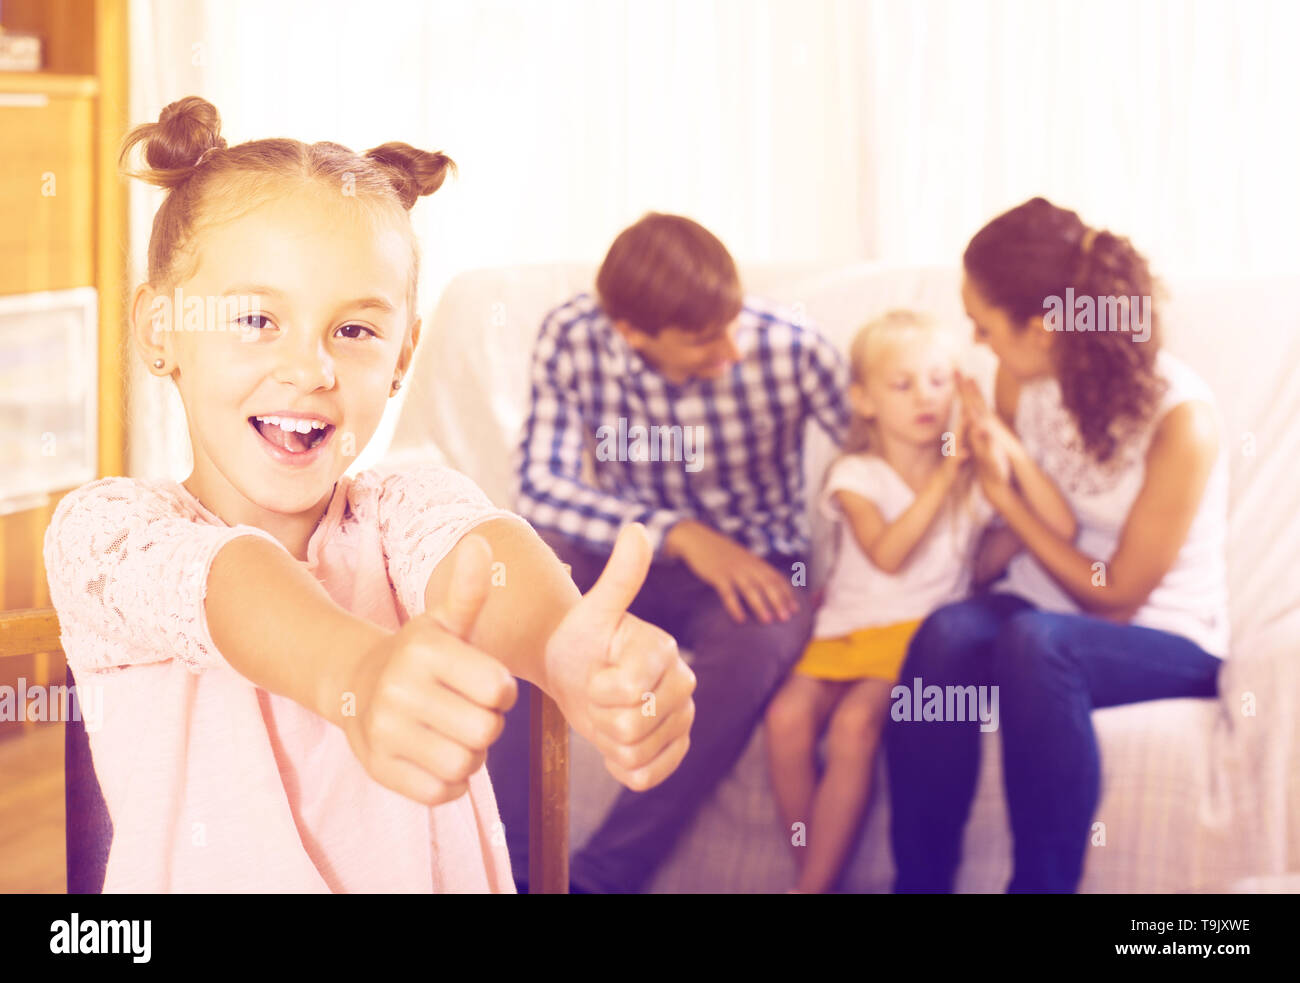 Family values: portrait of american parents with little girls indoors. focus on girl - Stock Image